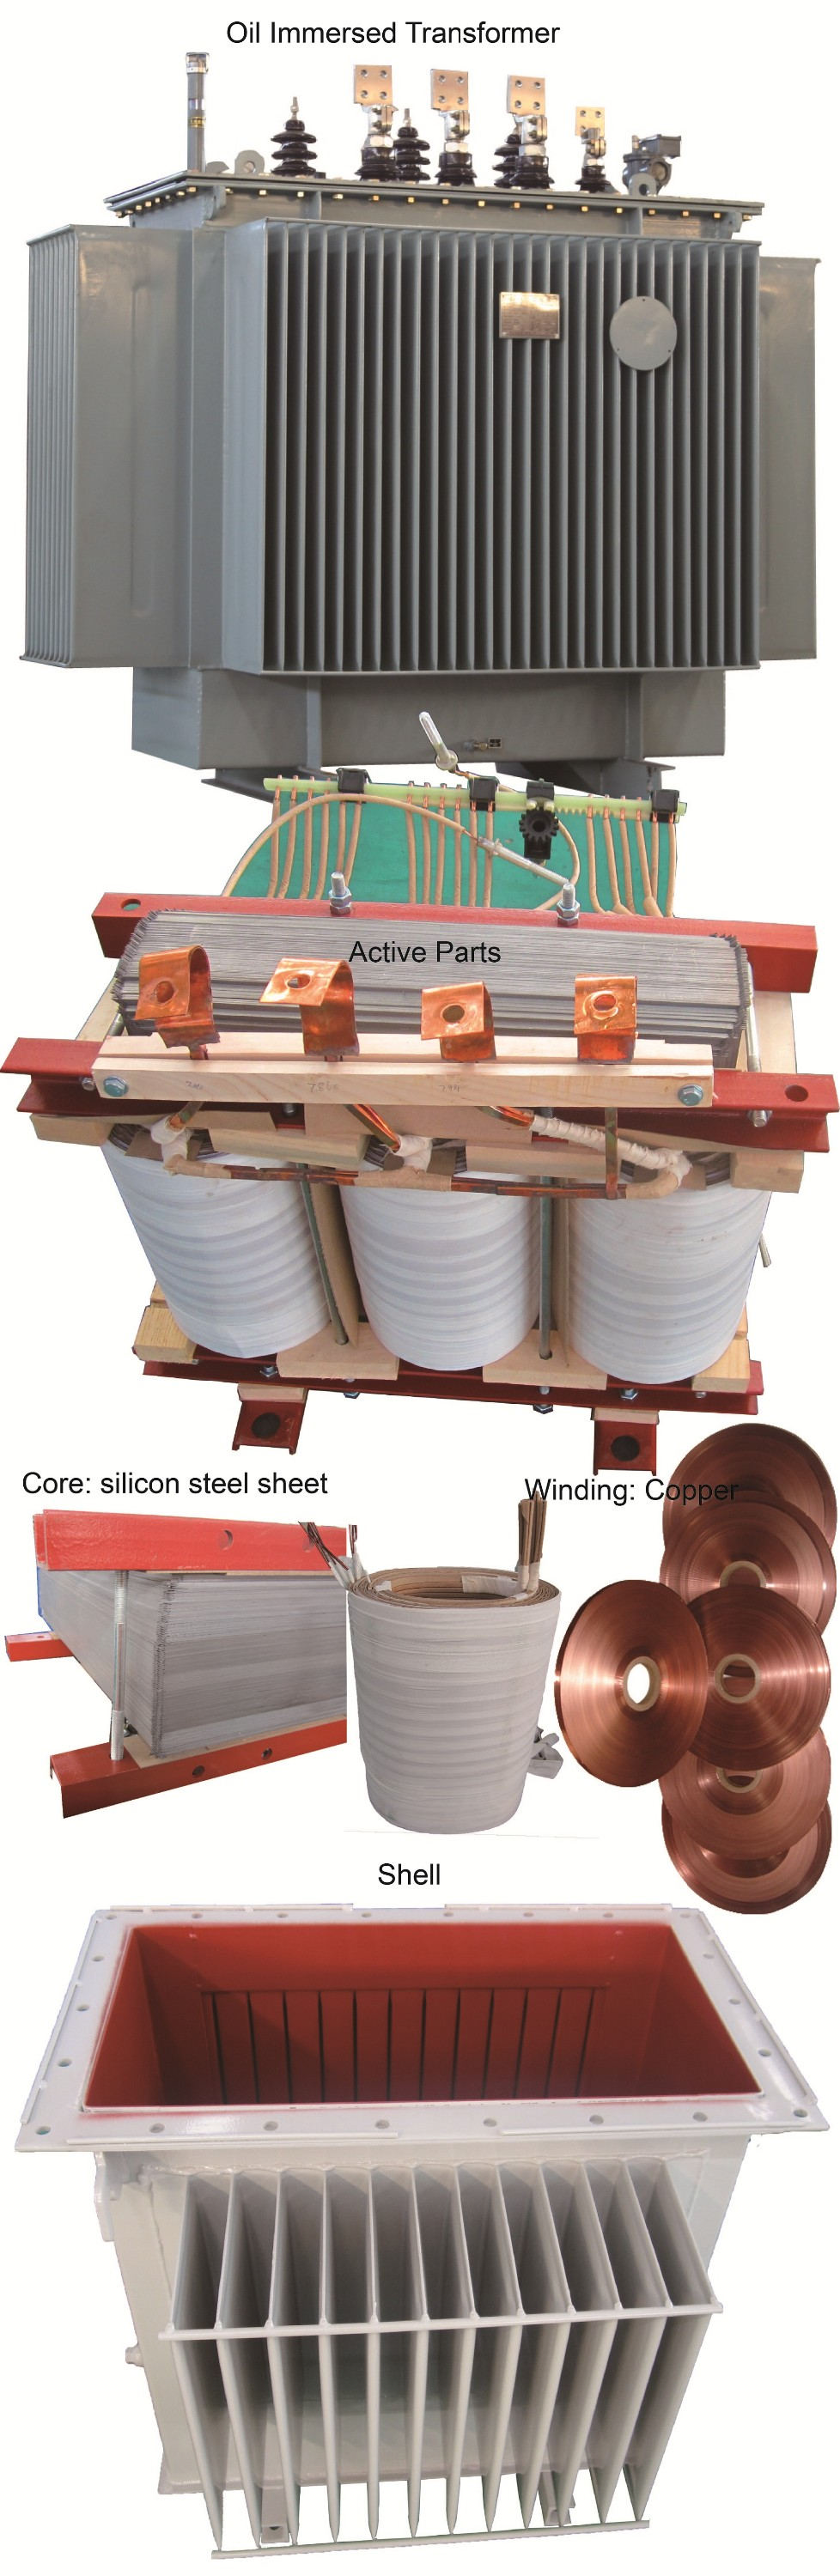 oil immersed transformer details-01.jpg